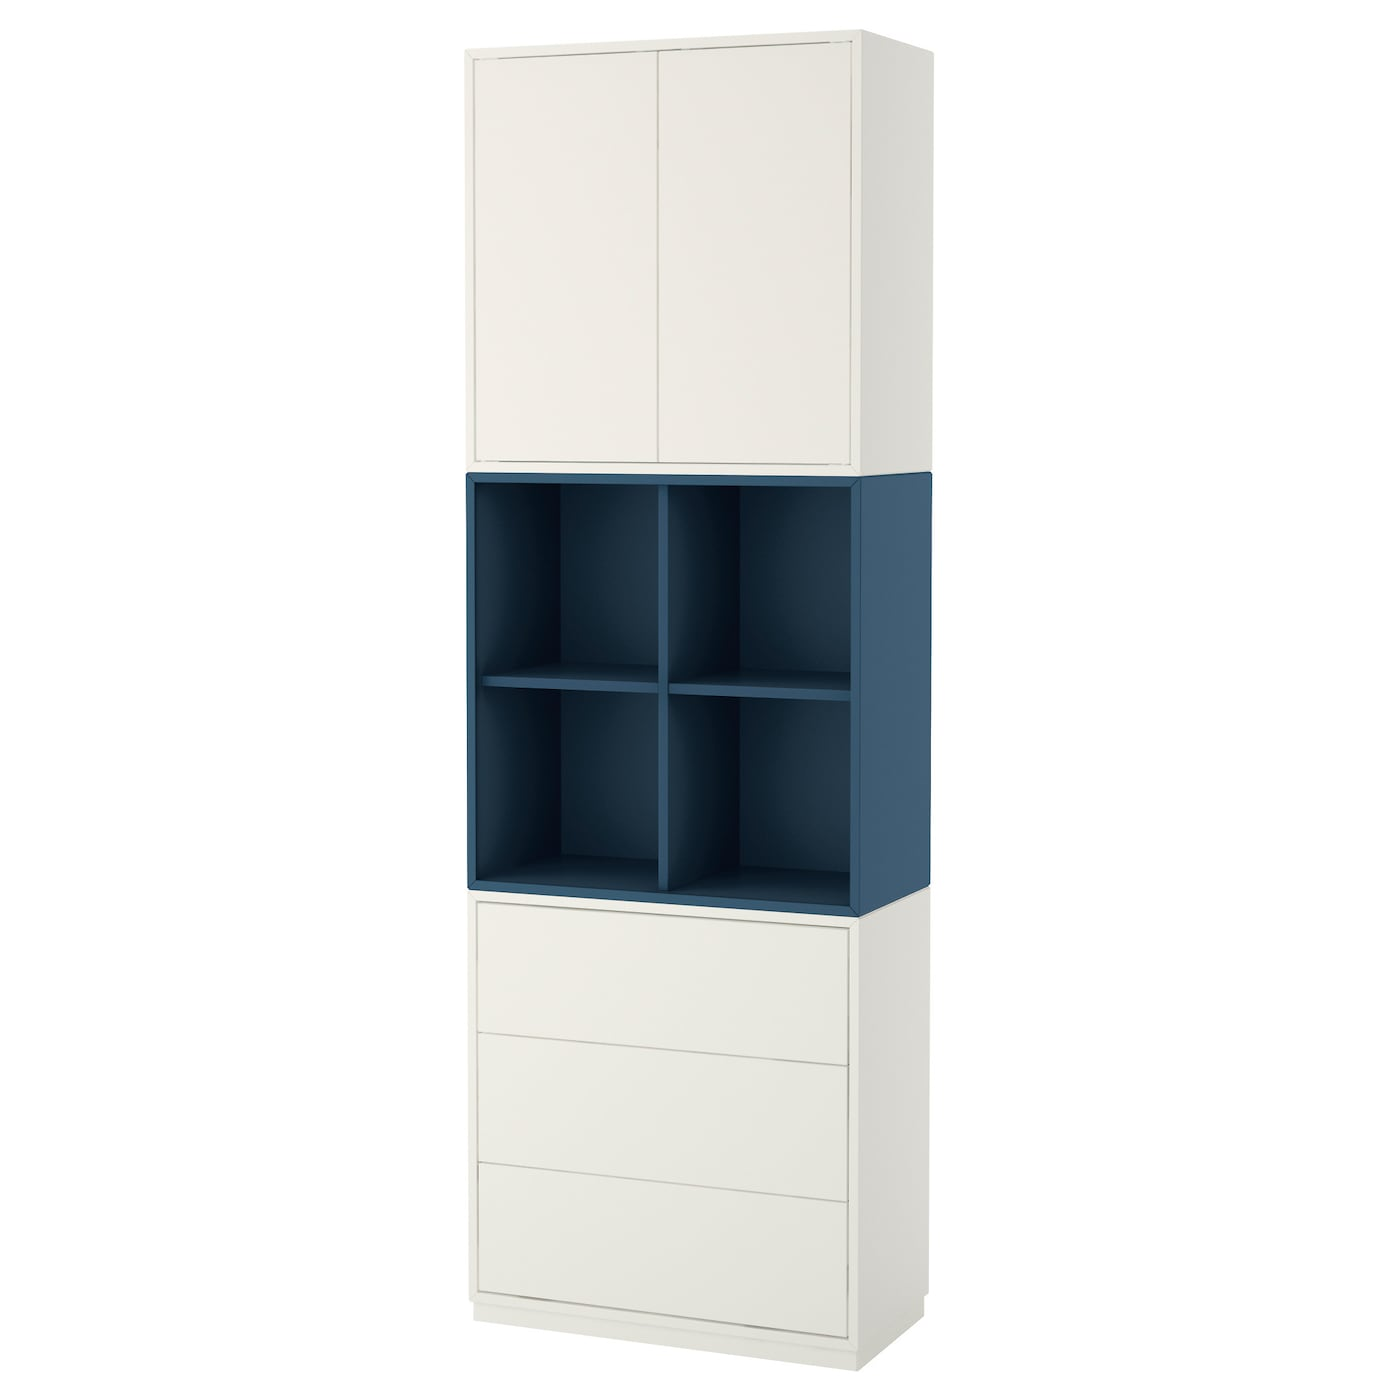 eket cabinet combination with plinth white dark blue 70 x 35 x 213 cm ikea. Black Bedroom Furniture Sets. Home Design Ideas